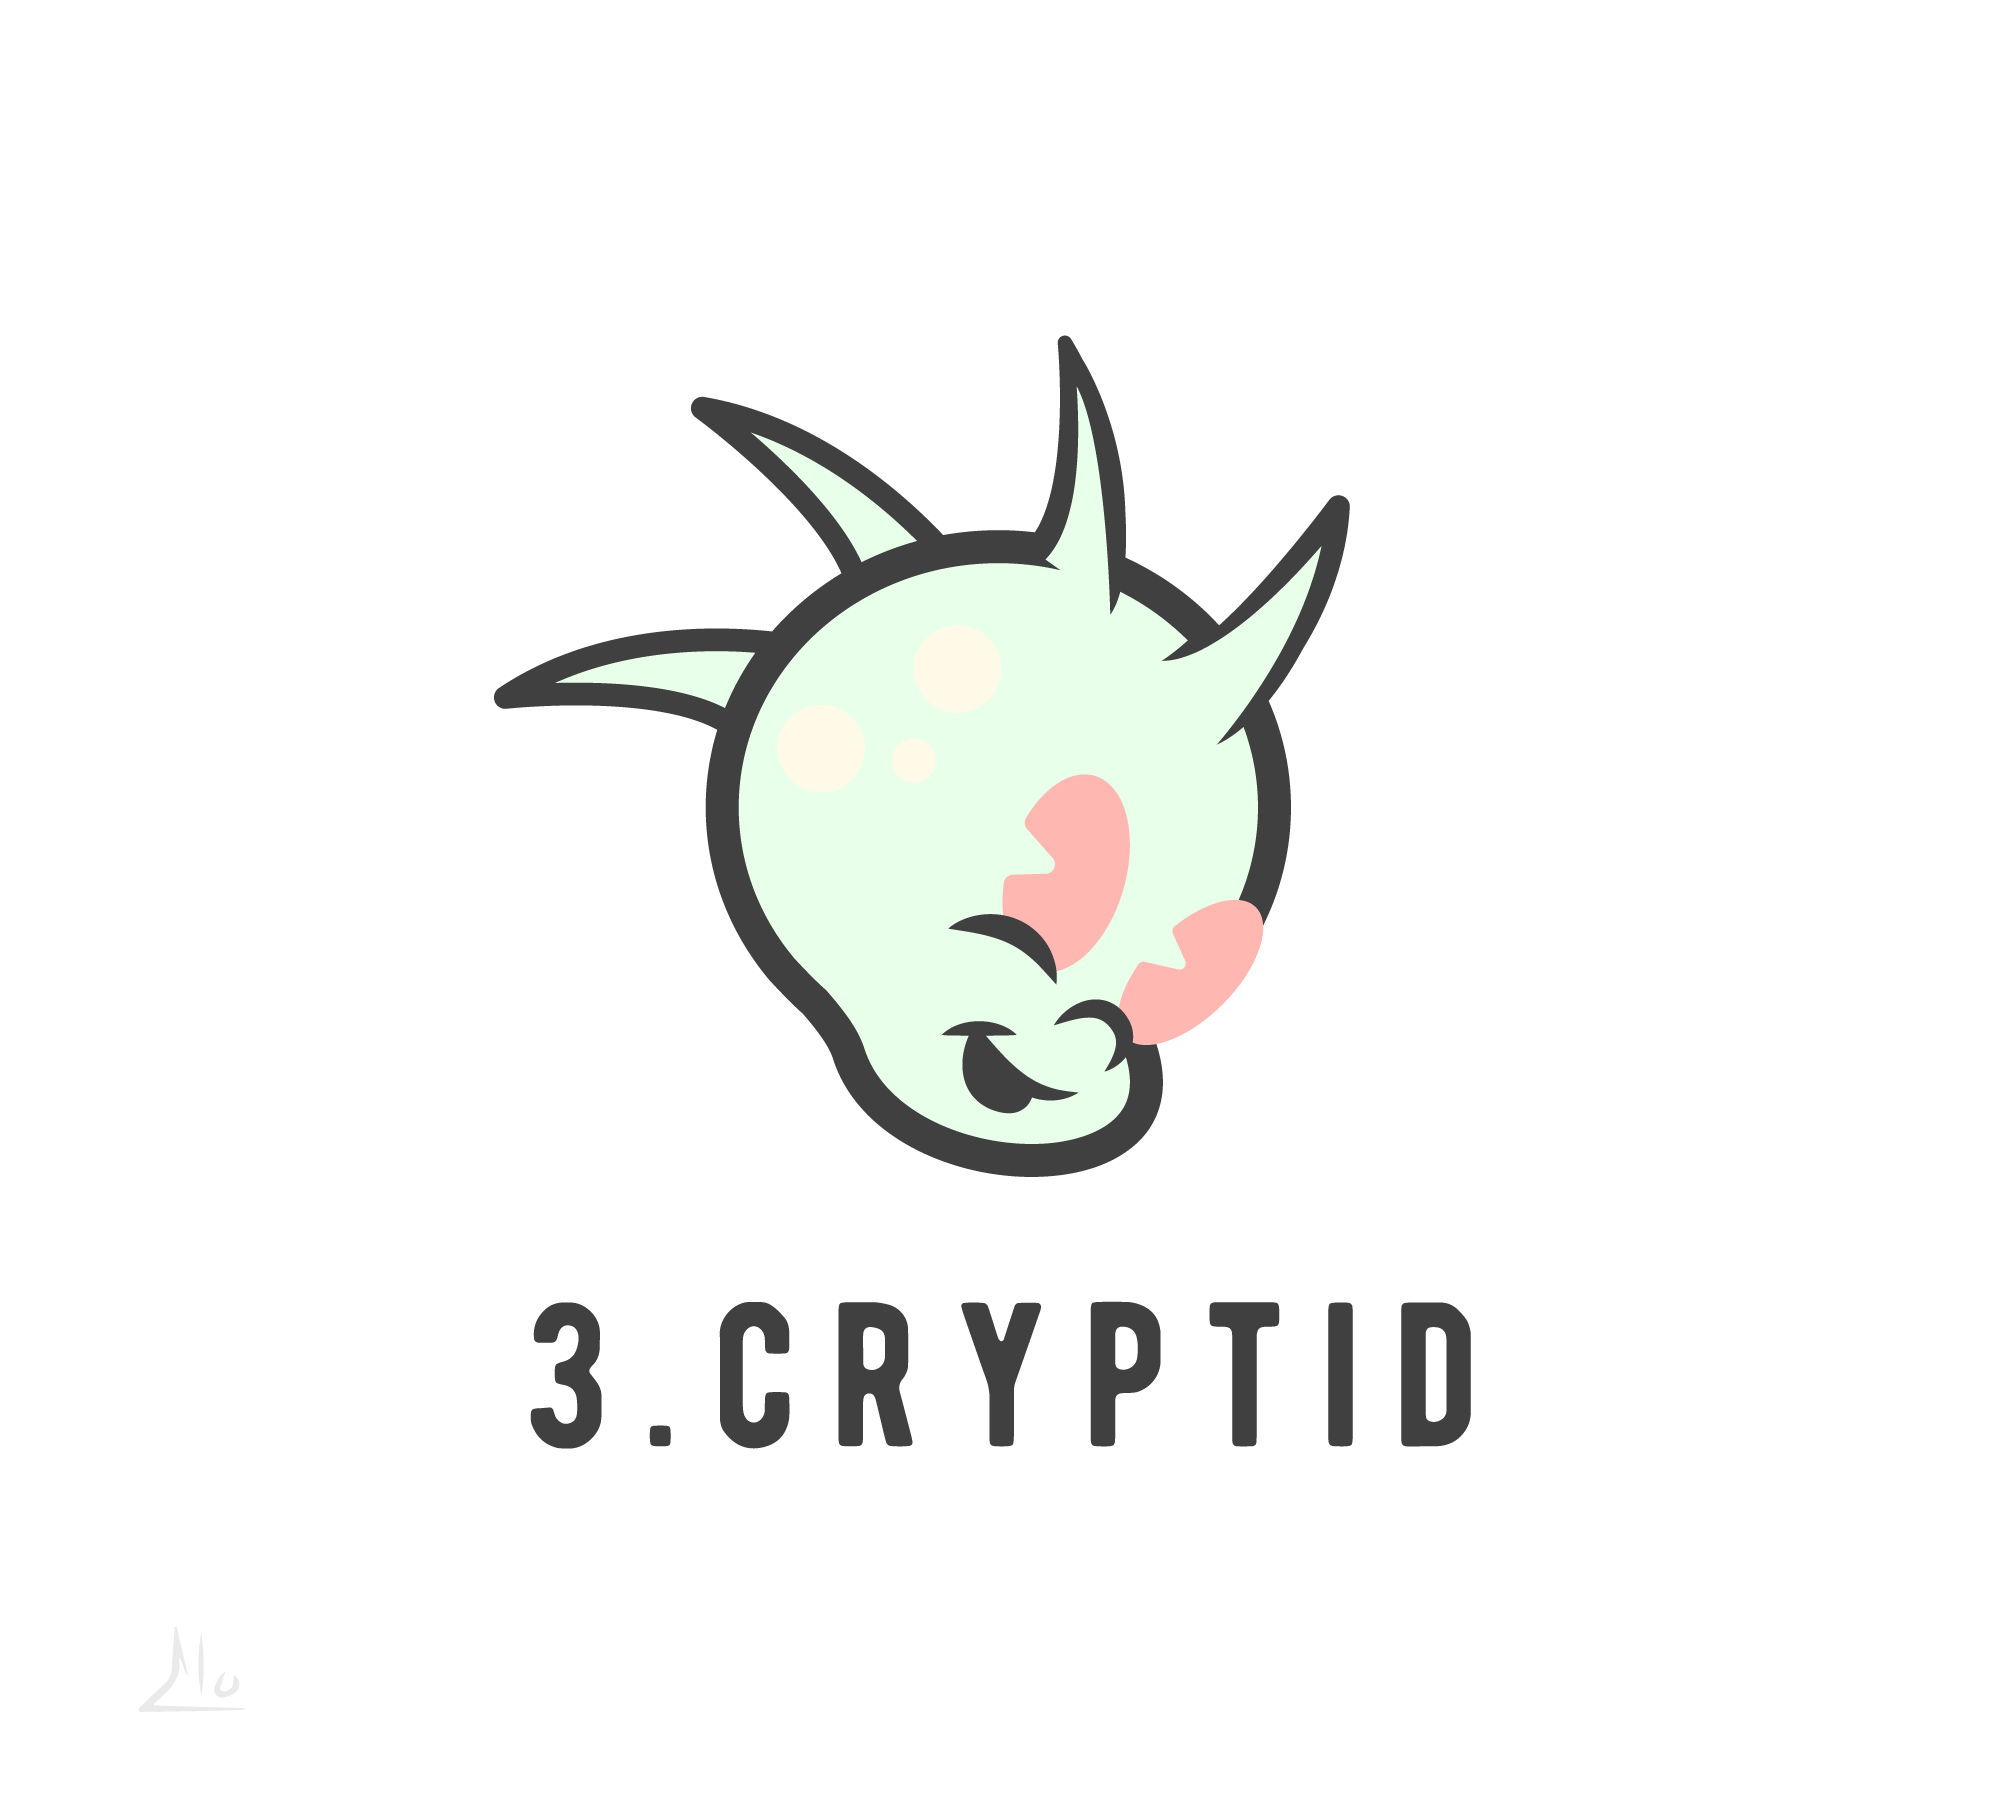 @elomakesthings :  Day 3 - Cryptid(Chupacabra)